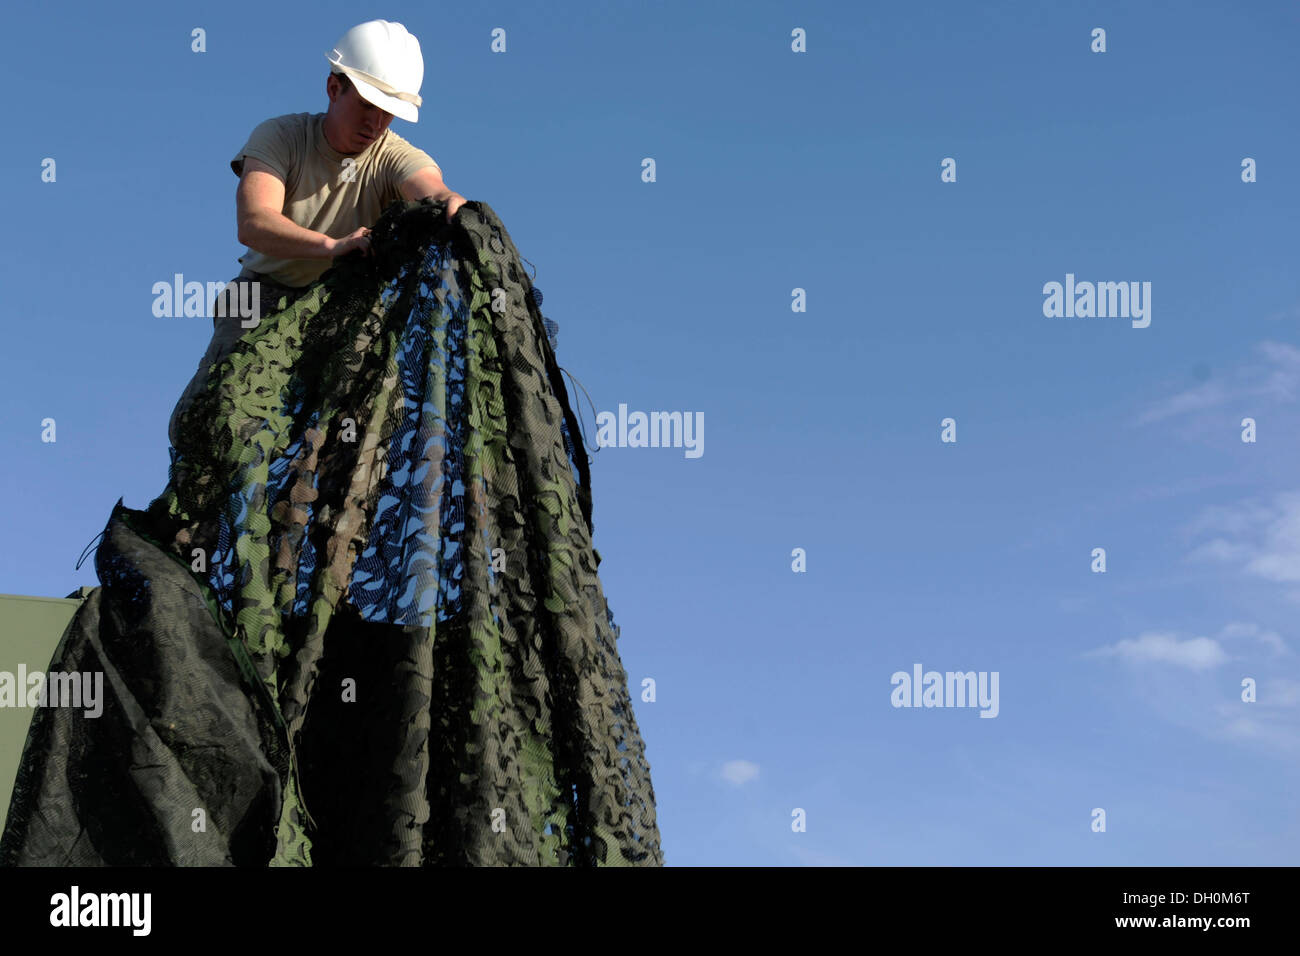 A U.S. Air Force Airman removes camouflage netting at Hill Air Force Base, Utah, Oct. 24, 2013. The Airman is assigned to the 729th Air Control Squadron who are currently in a mock deployment 'Operation Raging Bull 14-1' which will help prepare the Airmen - Stock Image